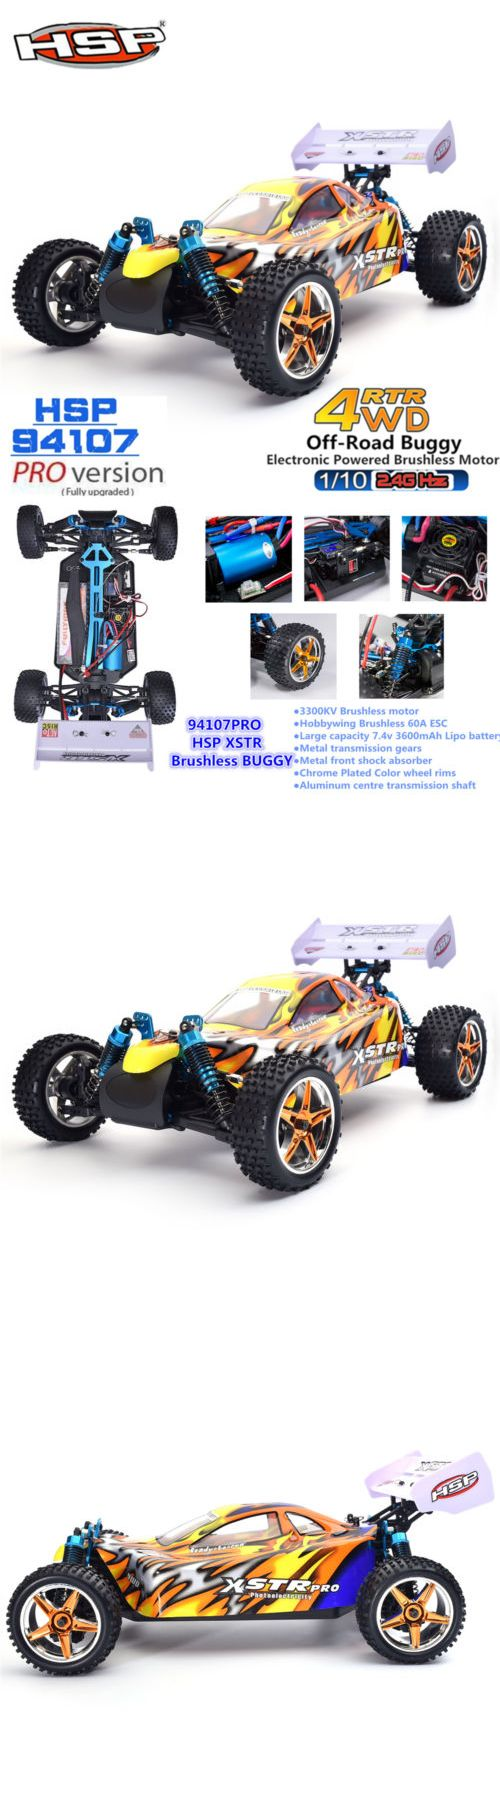 Cars trucks and motorcycles 182183 hsp 1 10 scale electric rc car rtr pro brushless